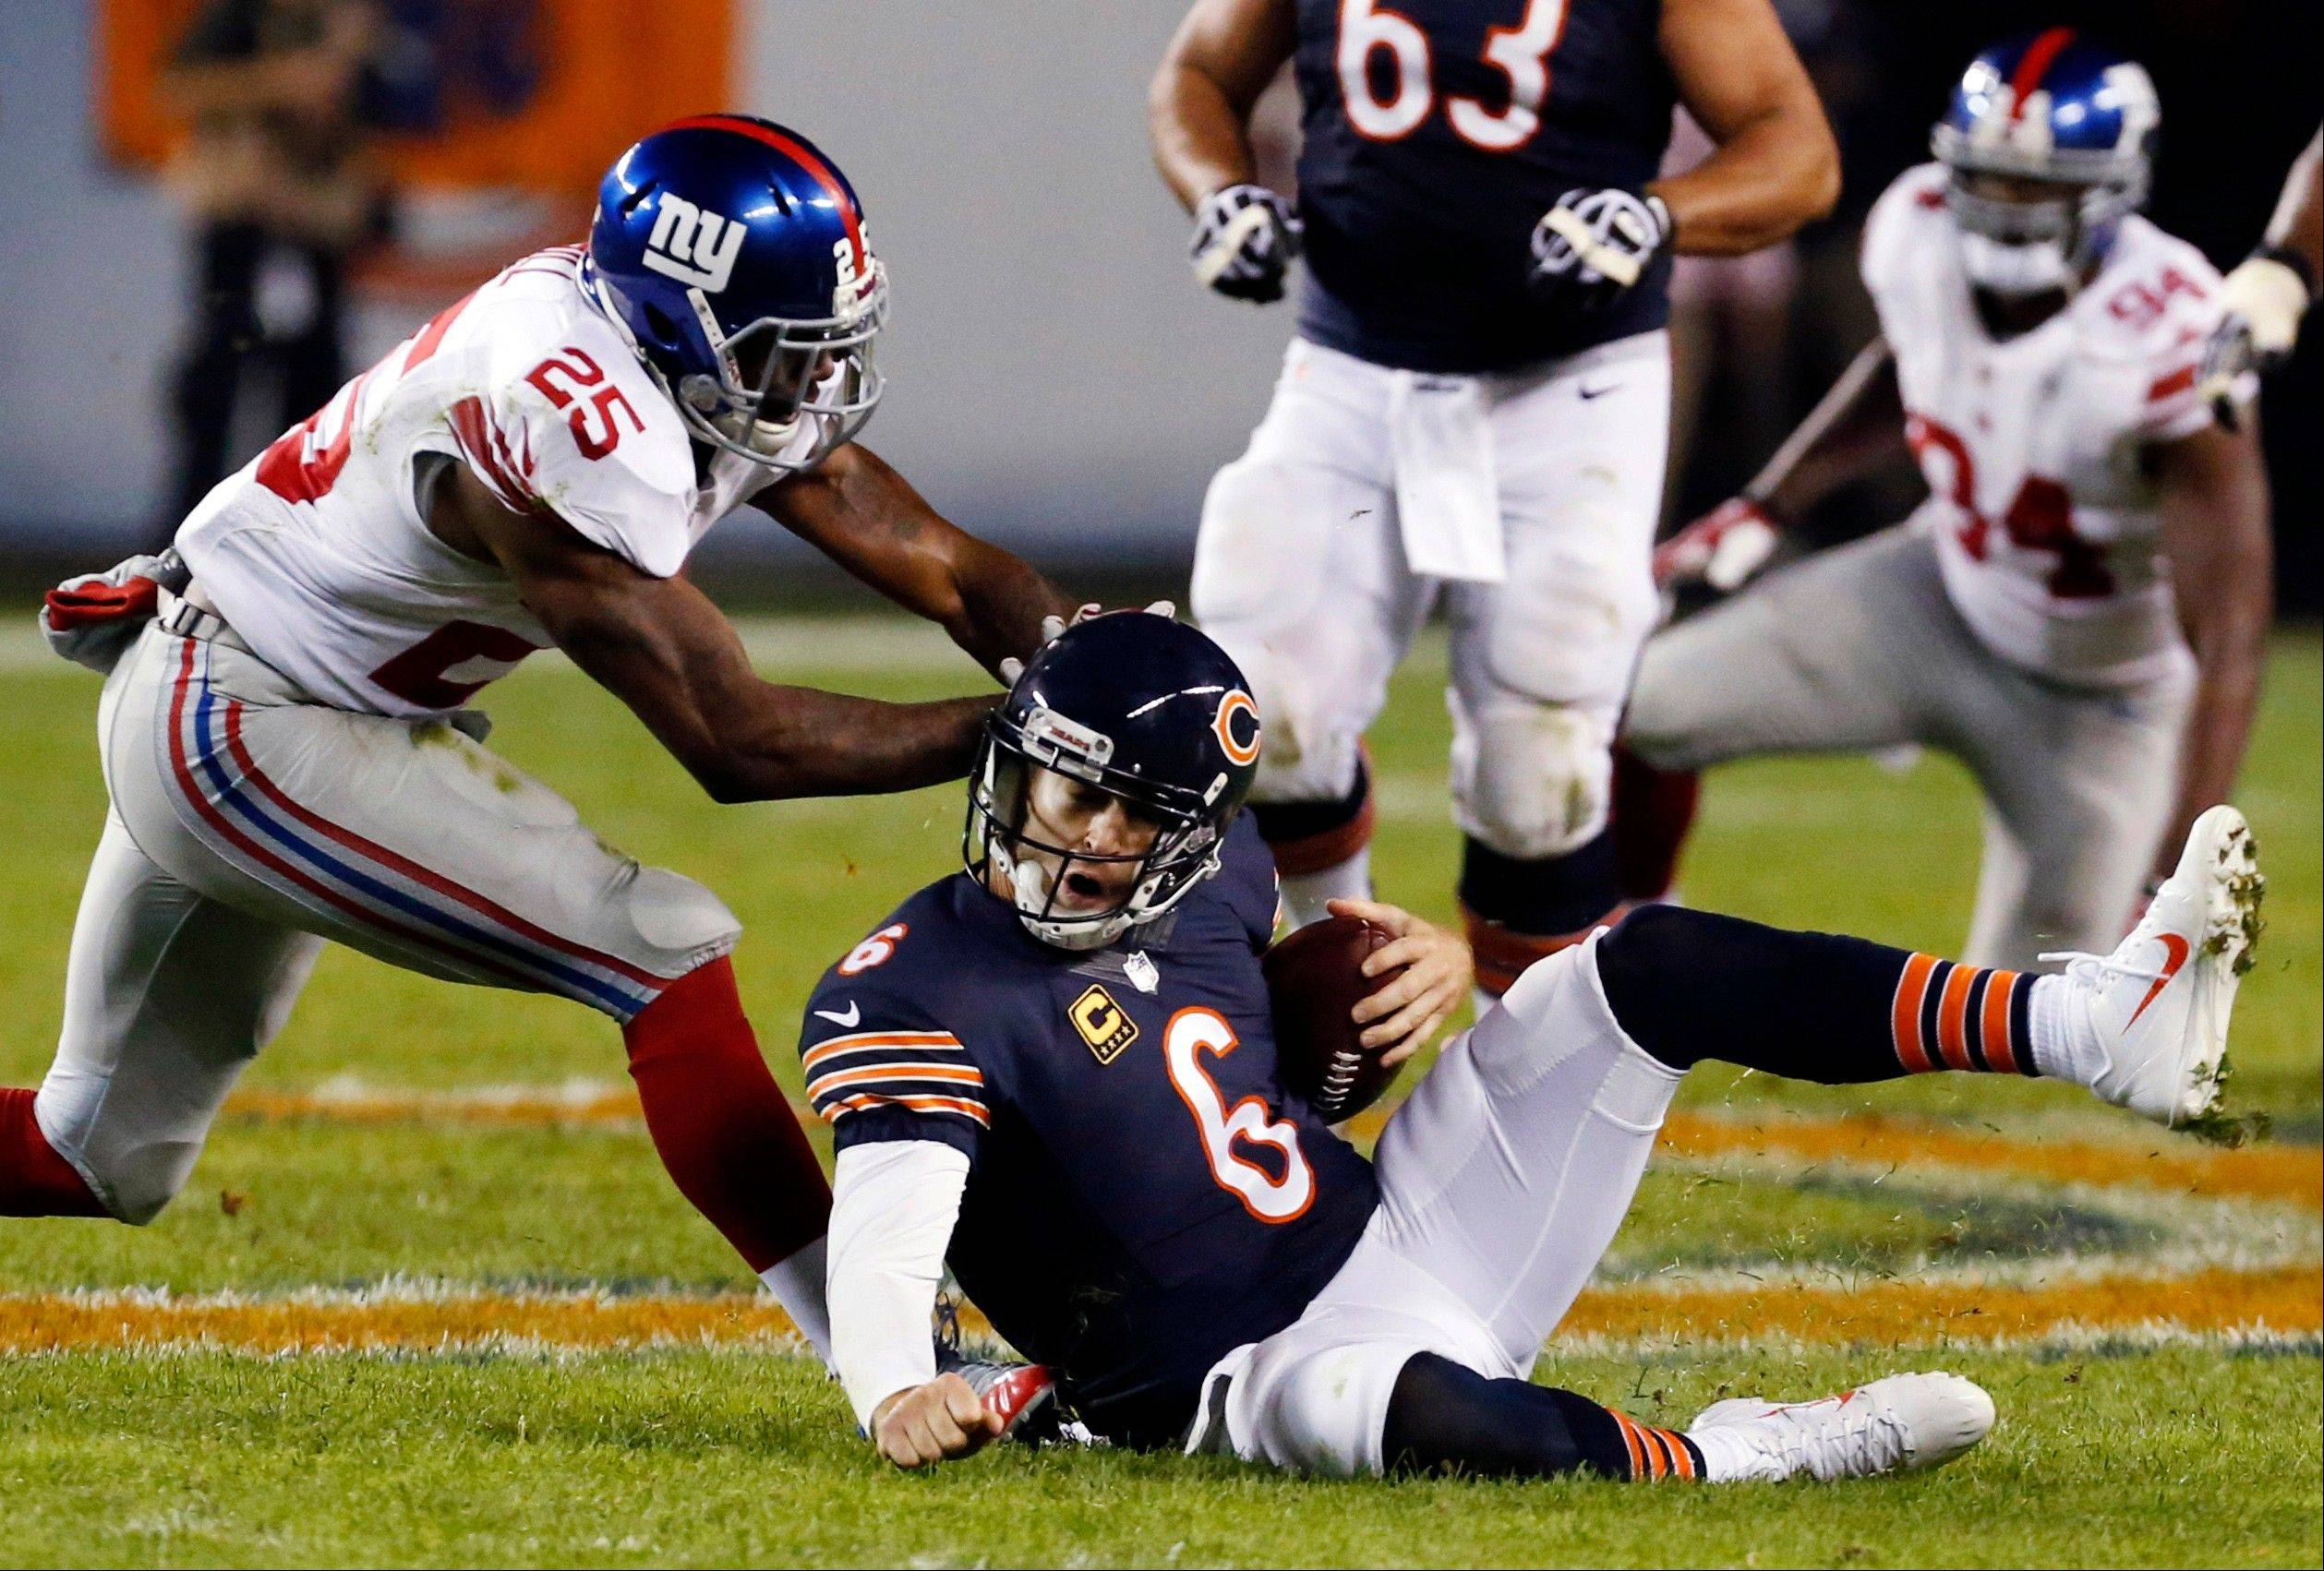 In this Oct. 10, 2013, file photo, New York Giants safety Antrel Rolle (26) pushes on the helmet of Chicago Bears quarterback Jay Cutler (6) during the second half of an NFL football game in Chicago. Rolle was penalized 15-yards for unnecessary roughness on the play. Almost once a game, an NFL player absorbs an illegal blow to the head or neck that could put his career, or worse, at risk. The NFL has been trying to prevent such blows over the past four years, targeting improper technique and making it a point of emphasis to penalize and fine players for hits that leave themselves and their opponents vulnerable.